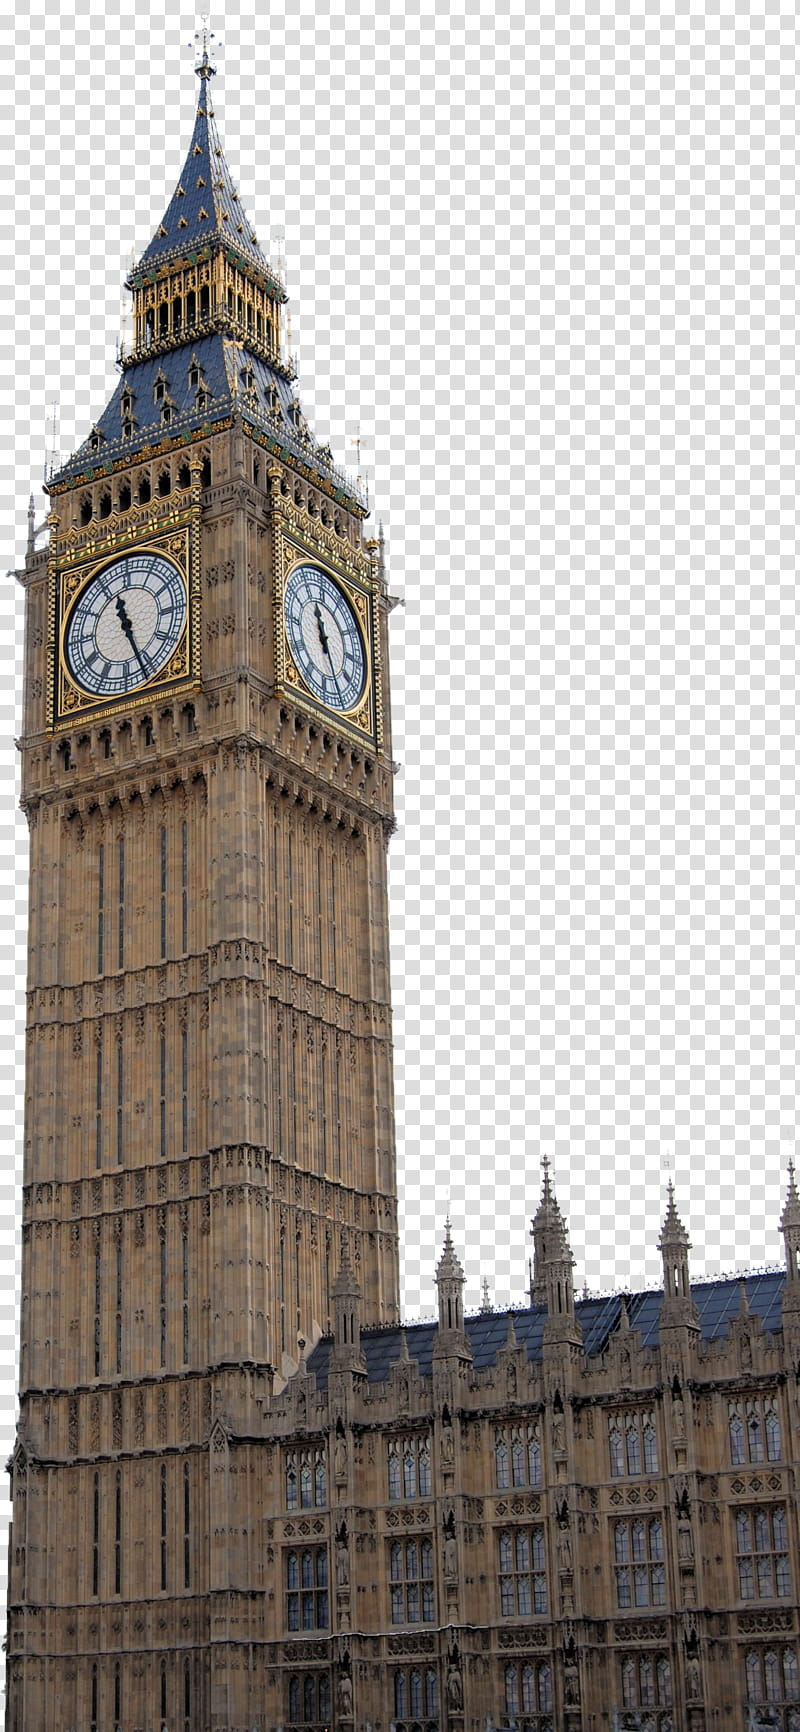 Westminster abbey clock clipart clip download London, Westminster Palace transparent background PNG ... clip download